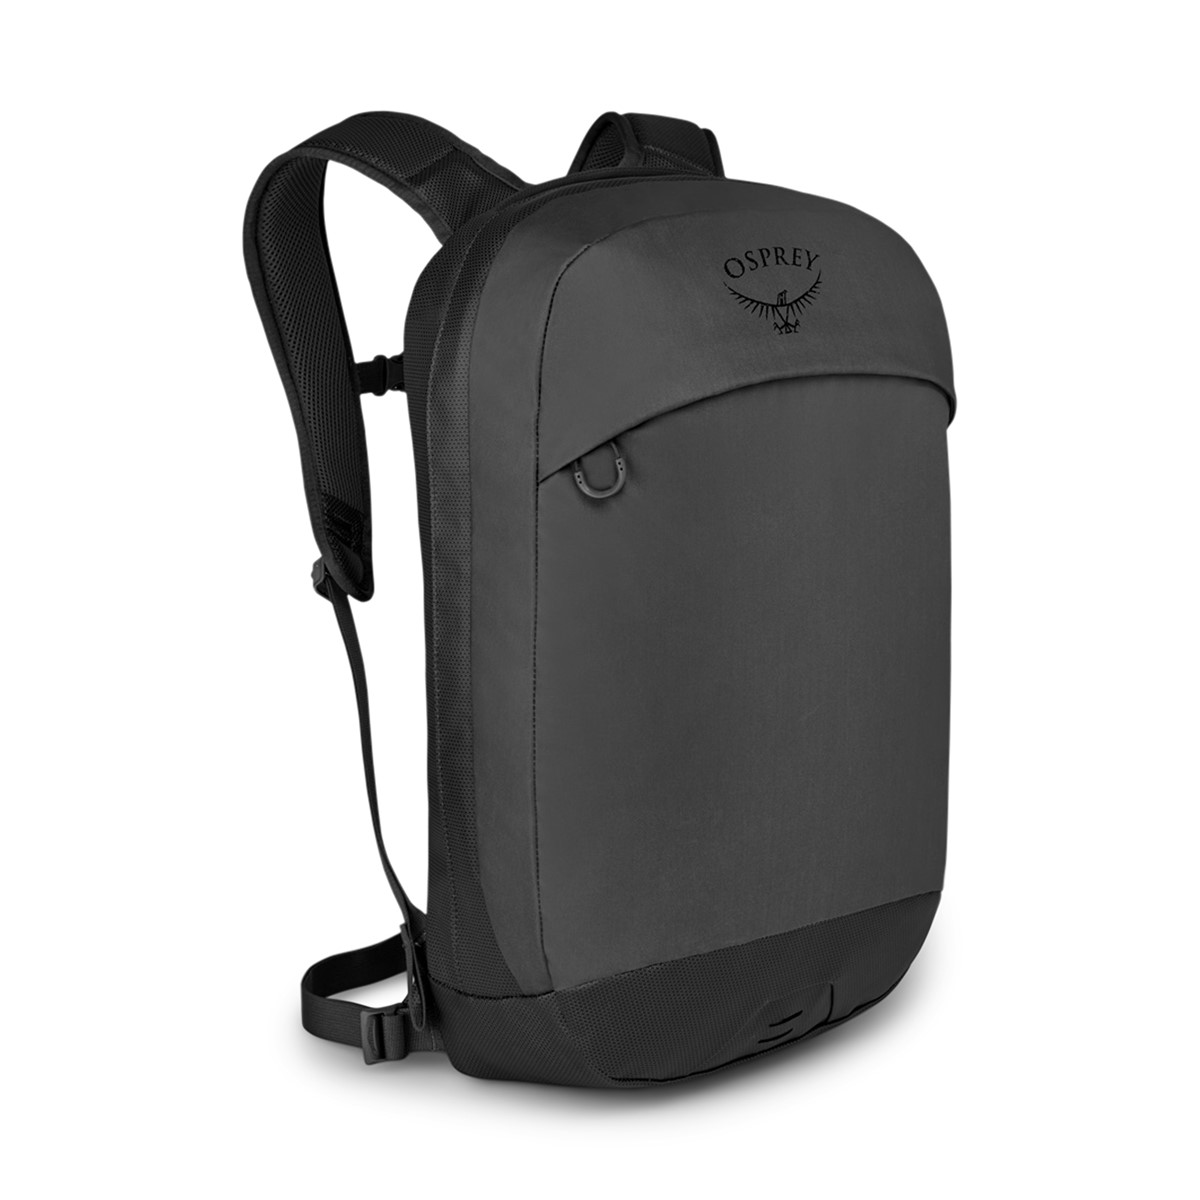 Transporter Panel Loader Backpack in Black